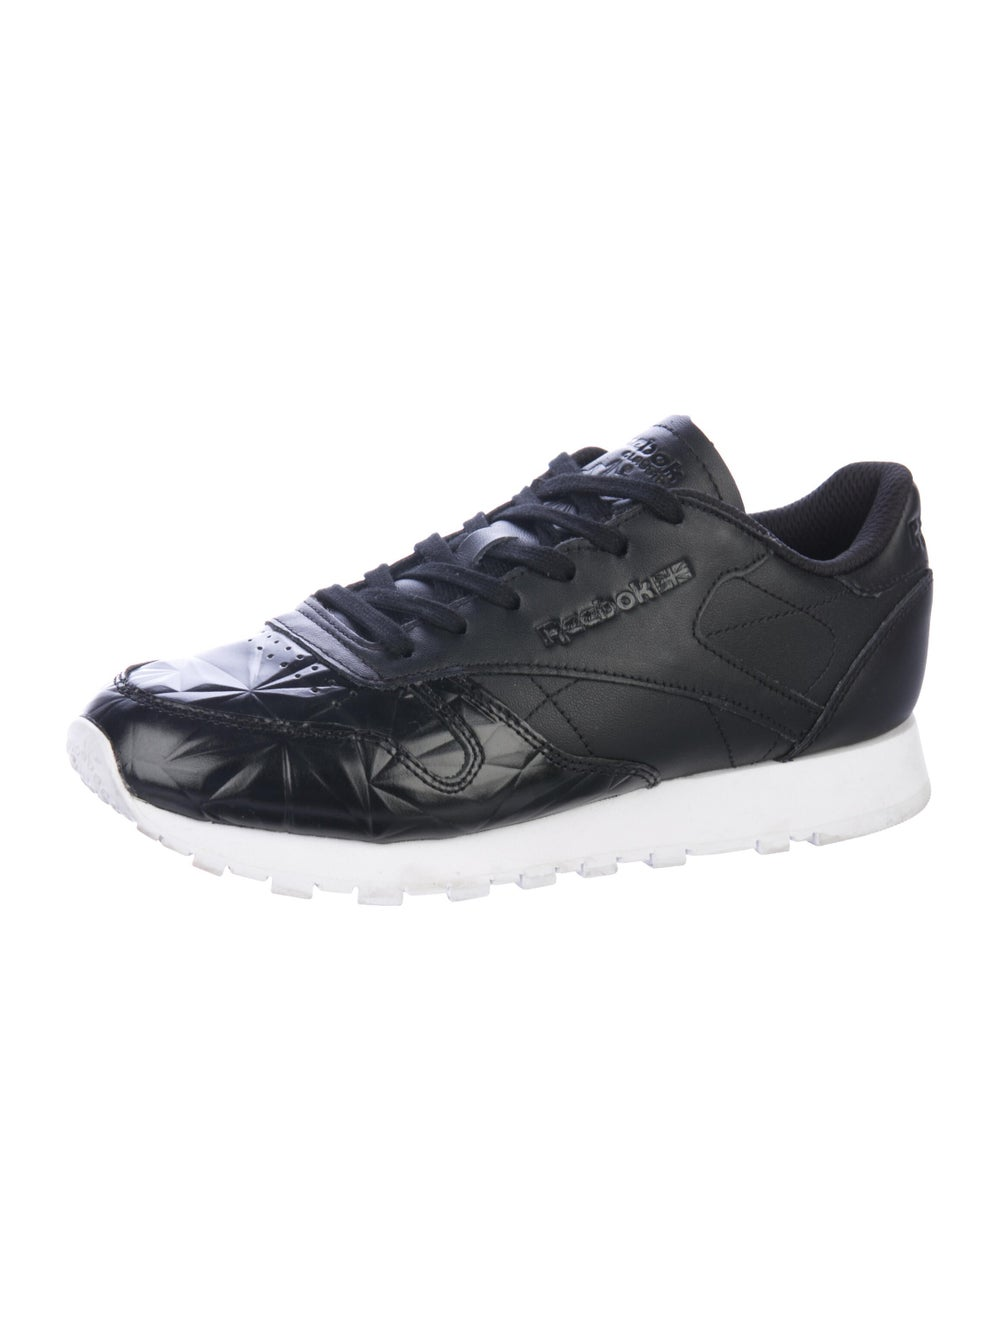 Reebok by Victoria Beckham Leather Low-Top Sneake… - image 2